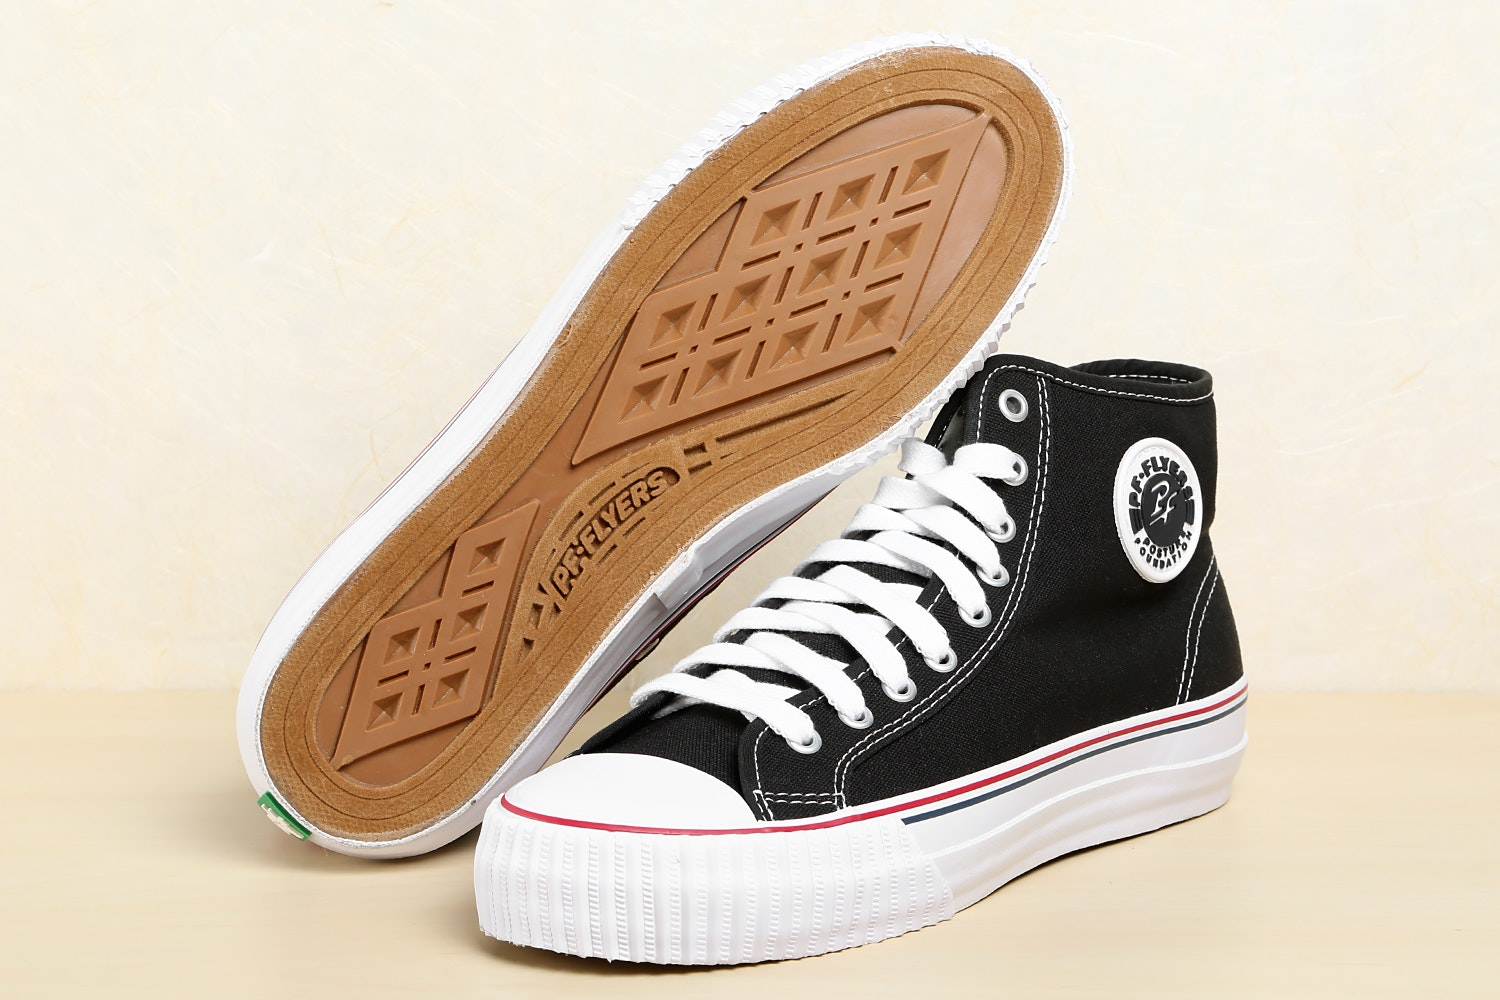 PF Flyers Center Hi Sneakers